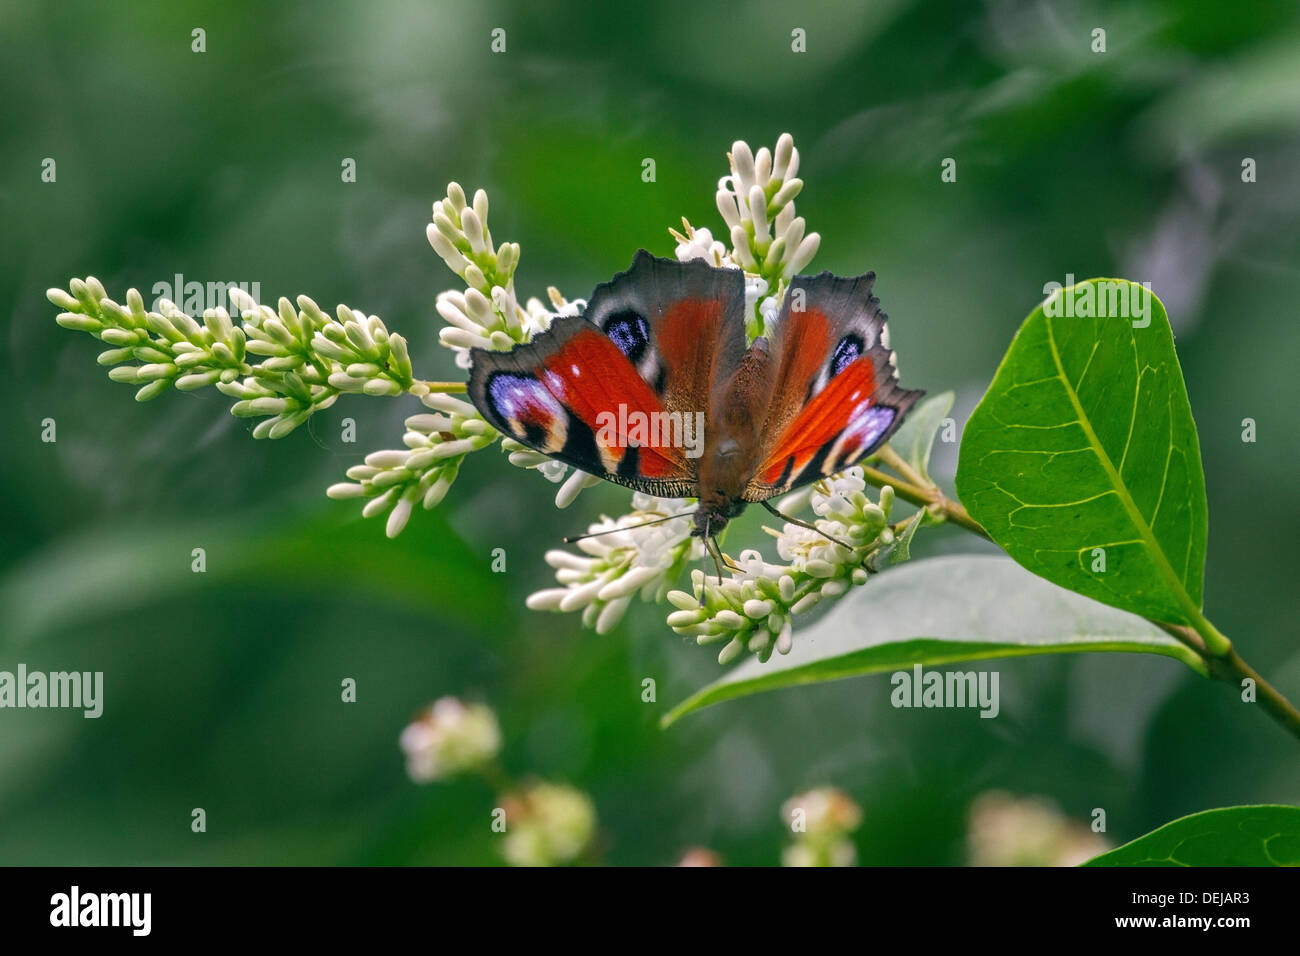 European Peacock butterfly (Aglais io / Inachis io) on privet flowers Stock Photo